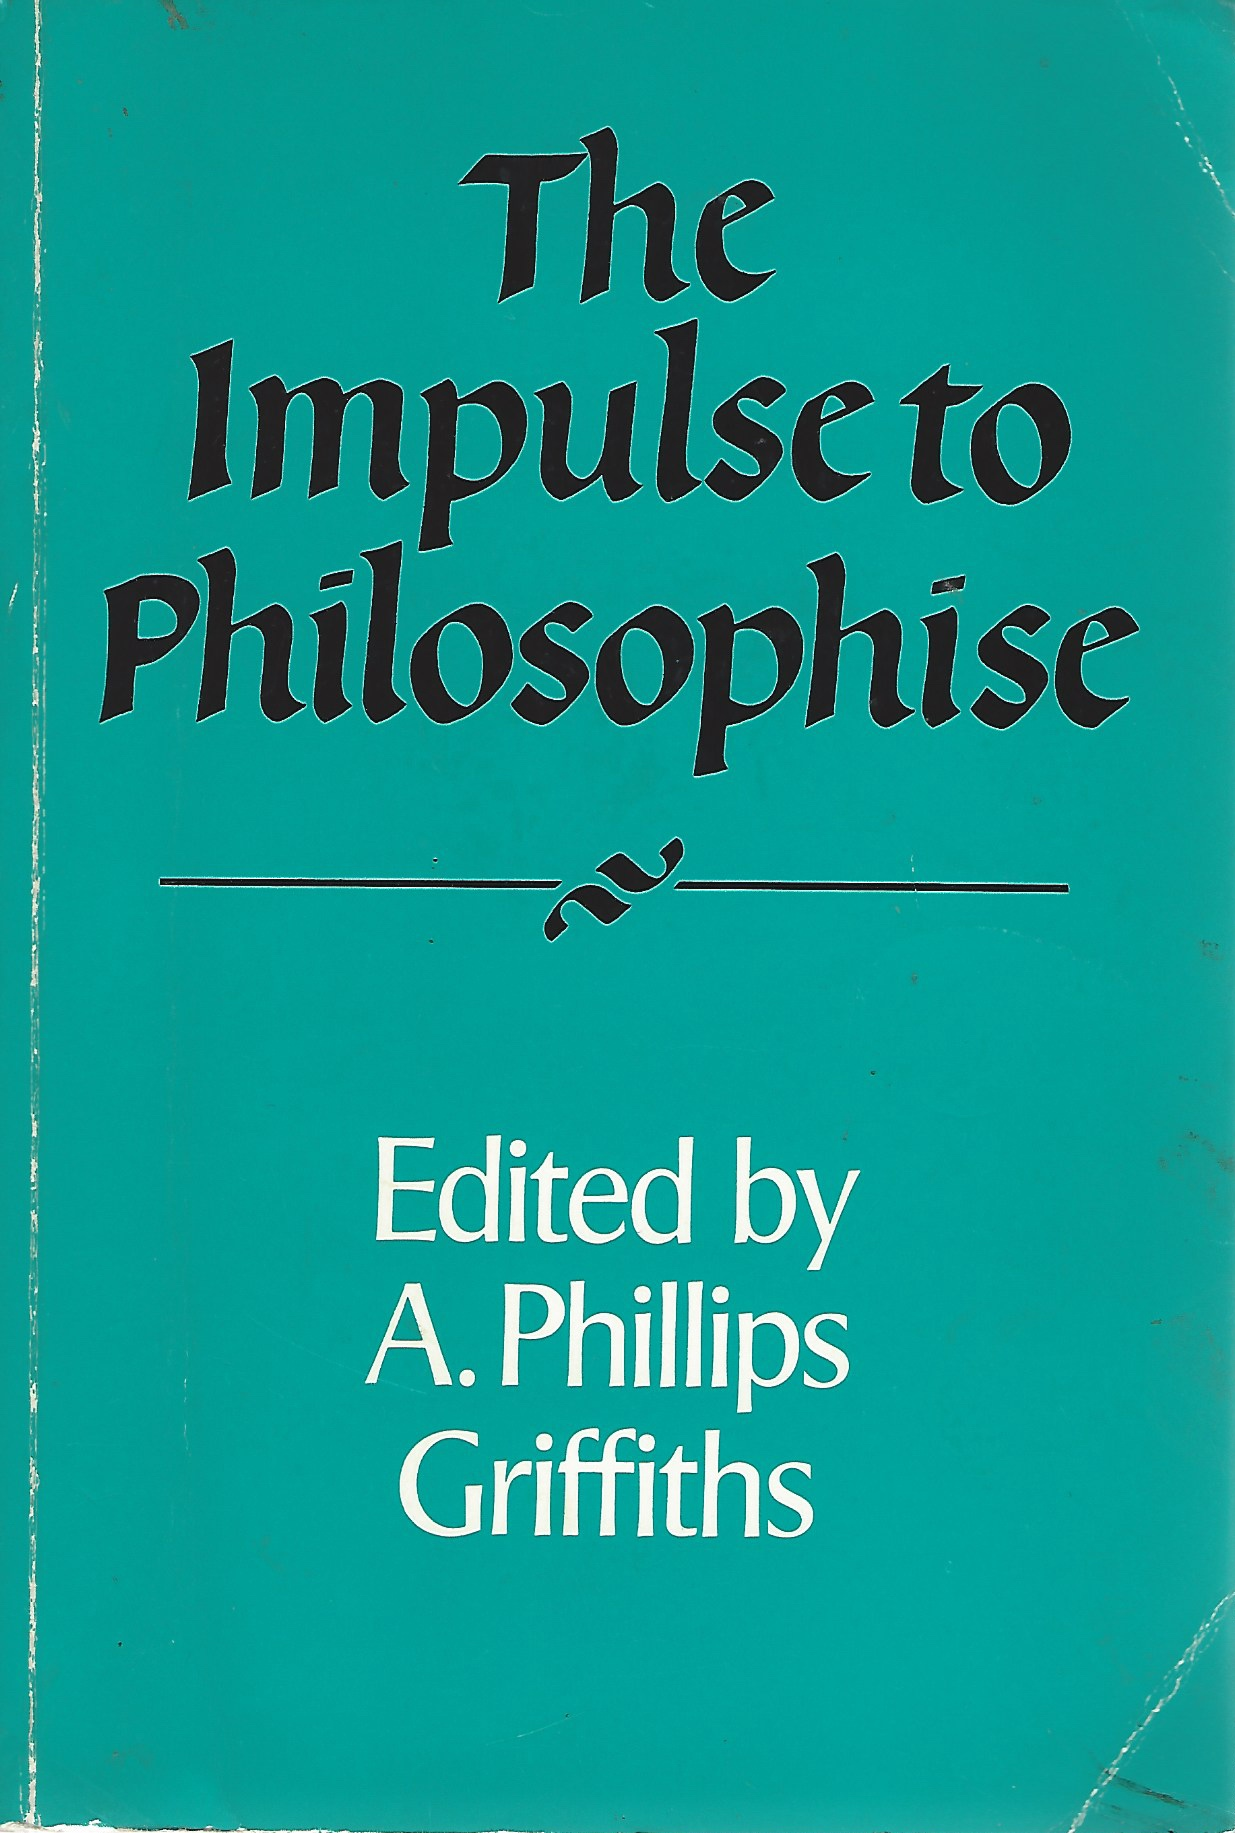 Image for The Impulse to Philosophise